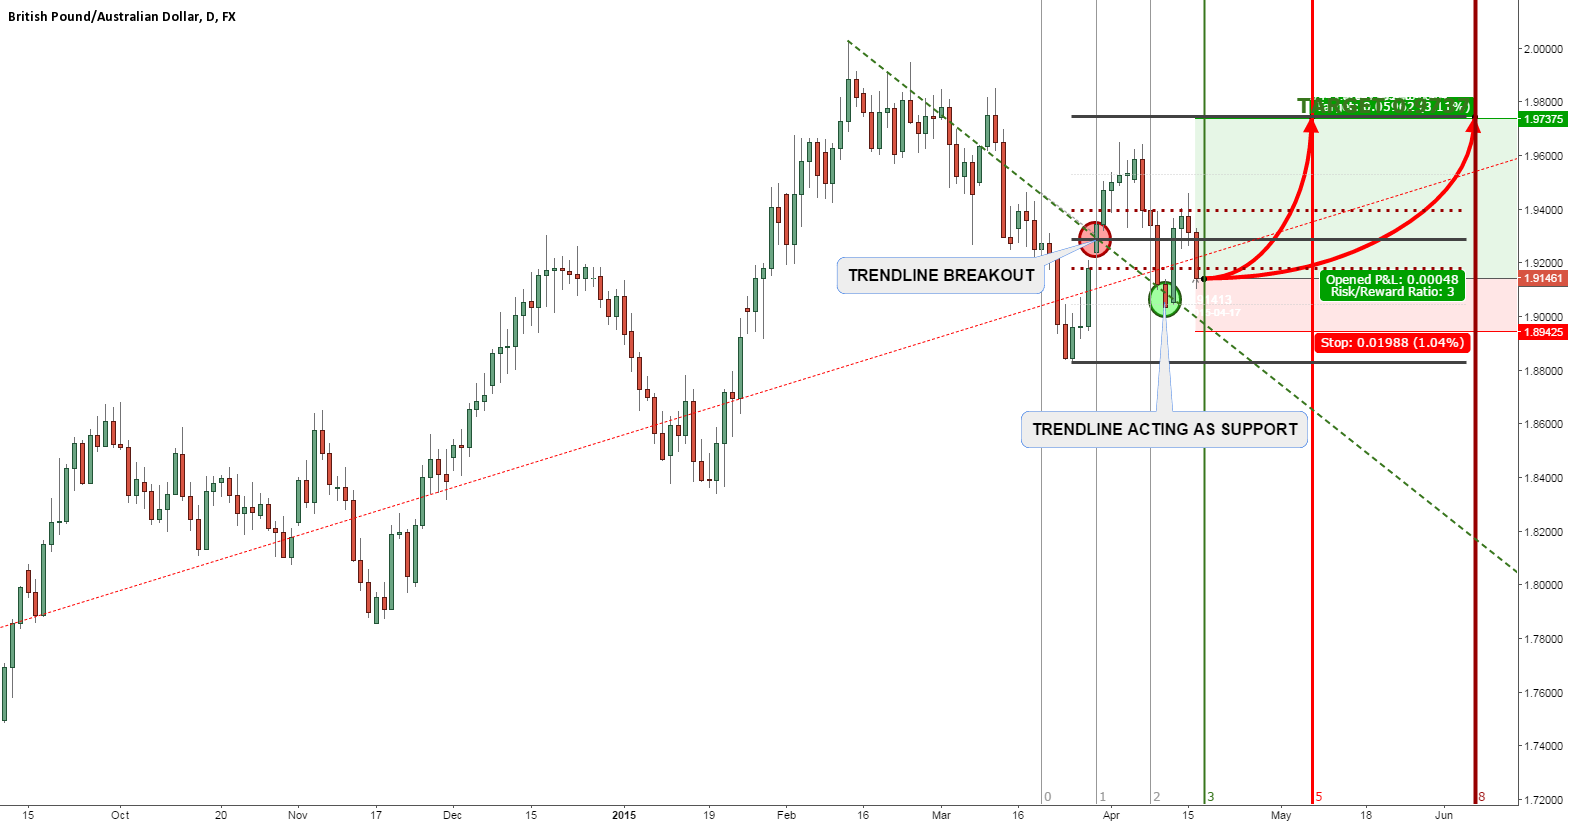 GBPAUD MAJOR UPTREND CONTINUES